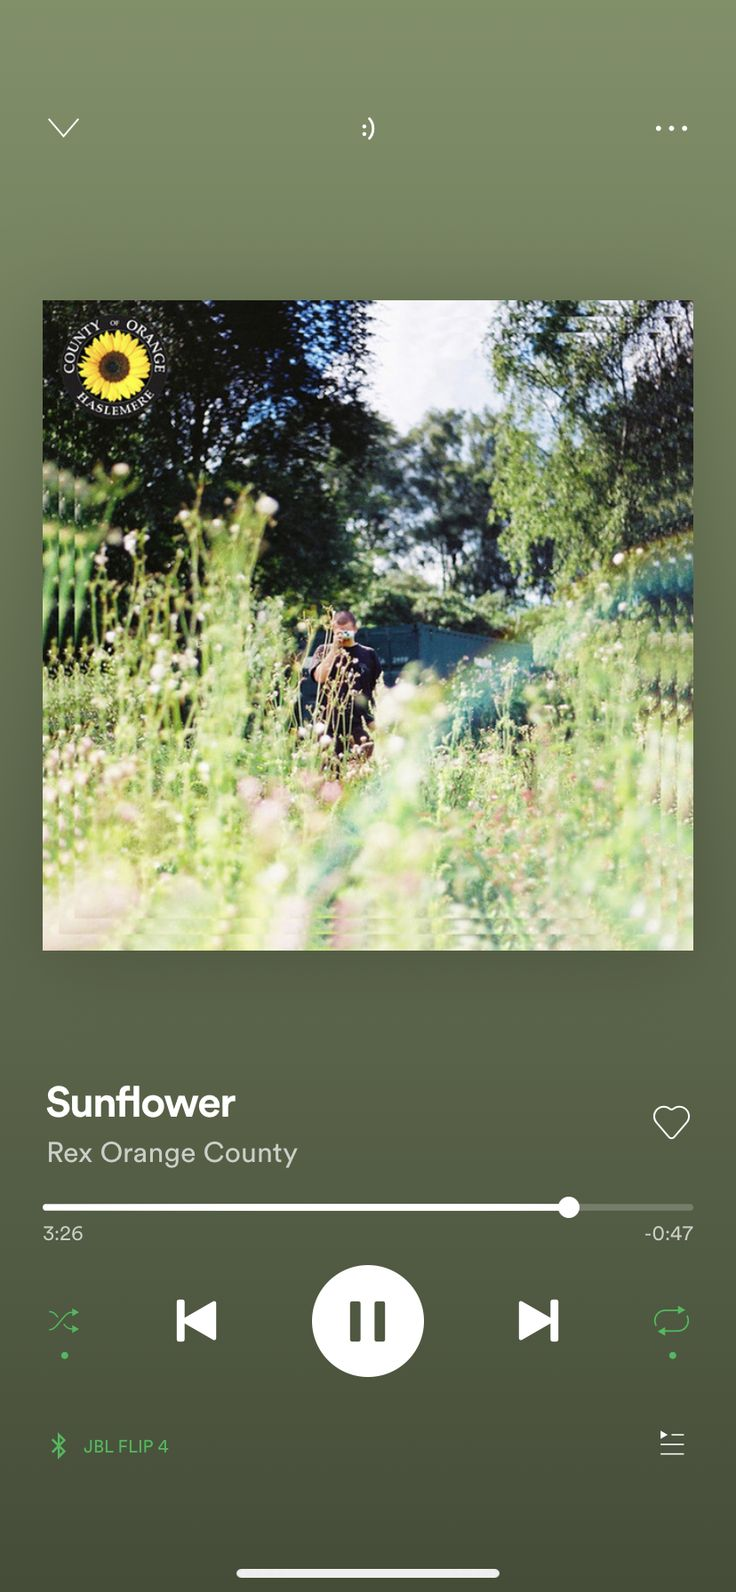 Sunflower, a song by Rex Orange County on Spotify in 2020